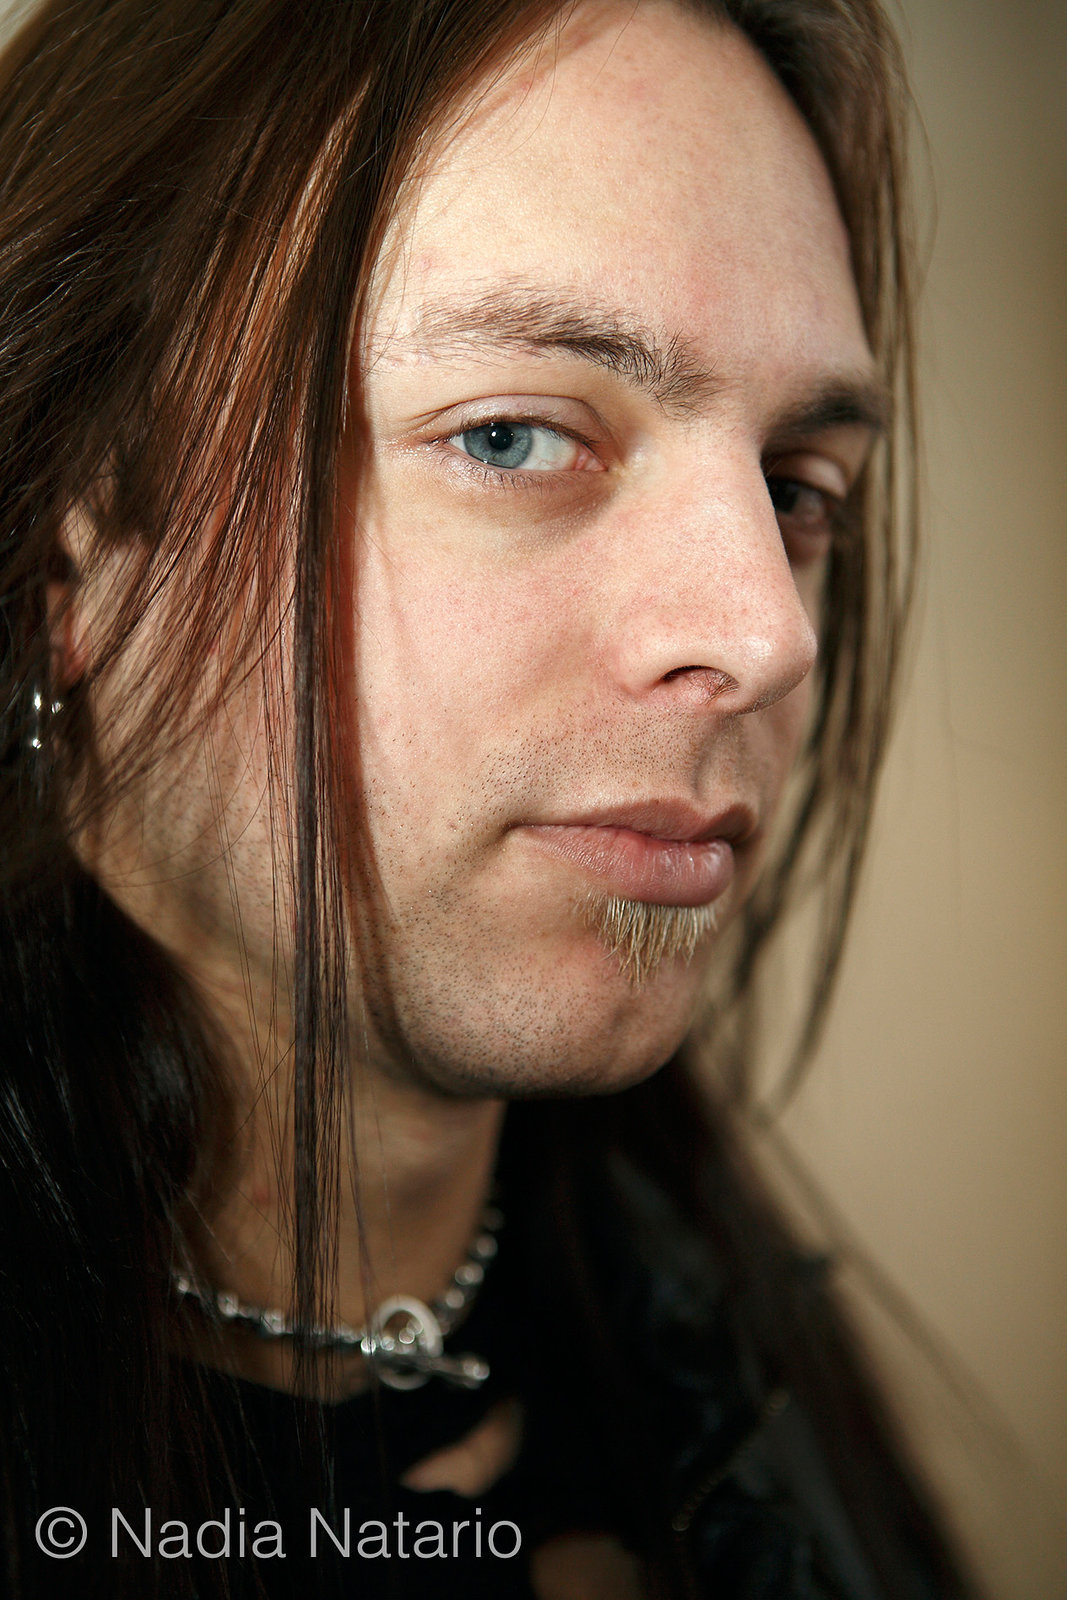 Matt Tuck of Bullet For My Valentine